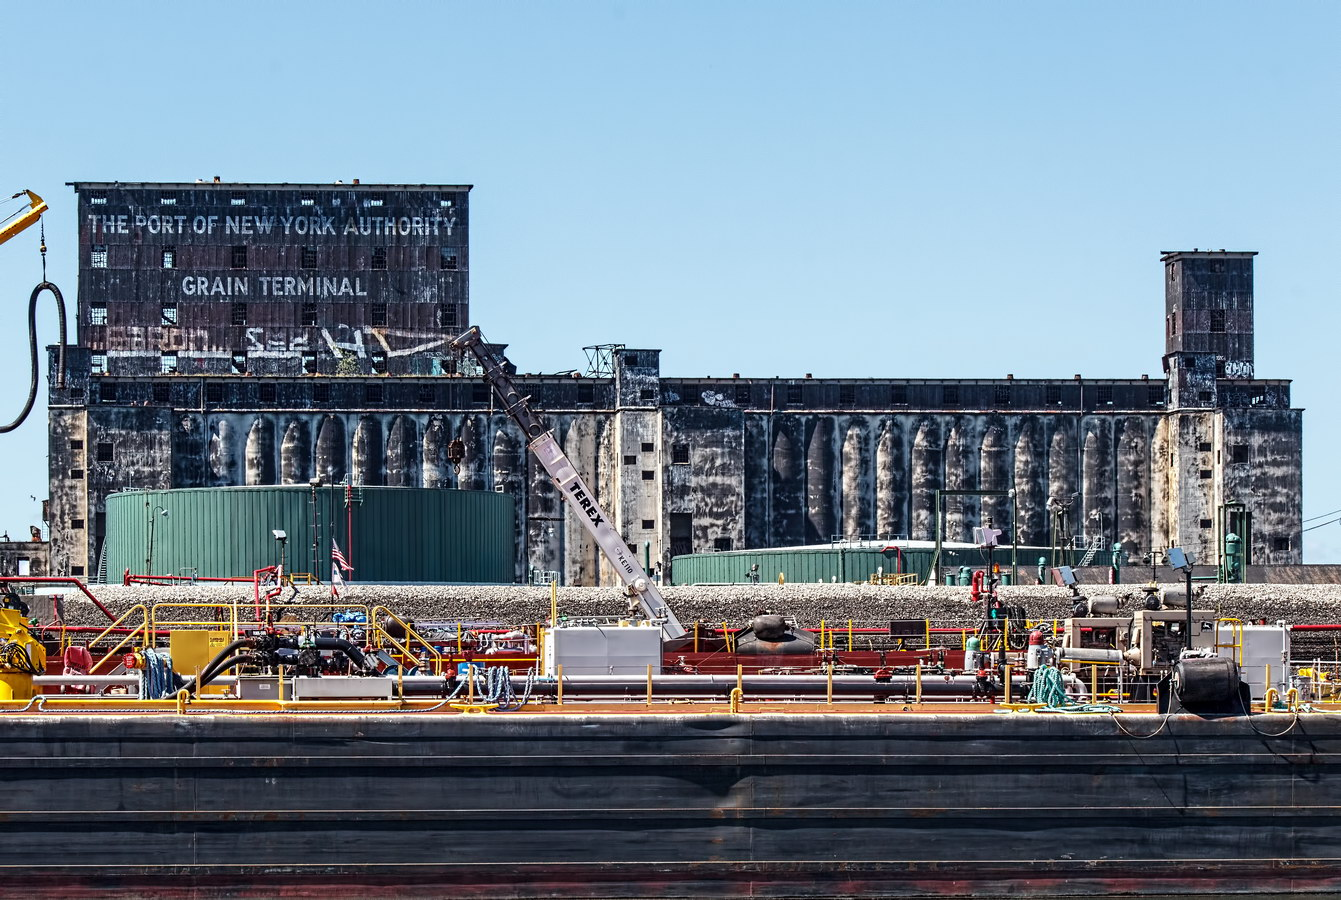 Port of New York Authority Grain Terminal